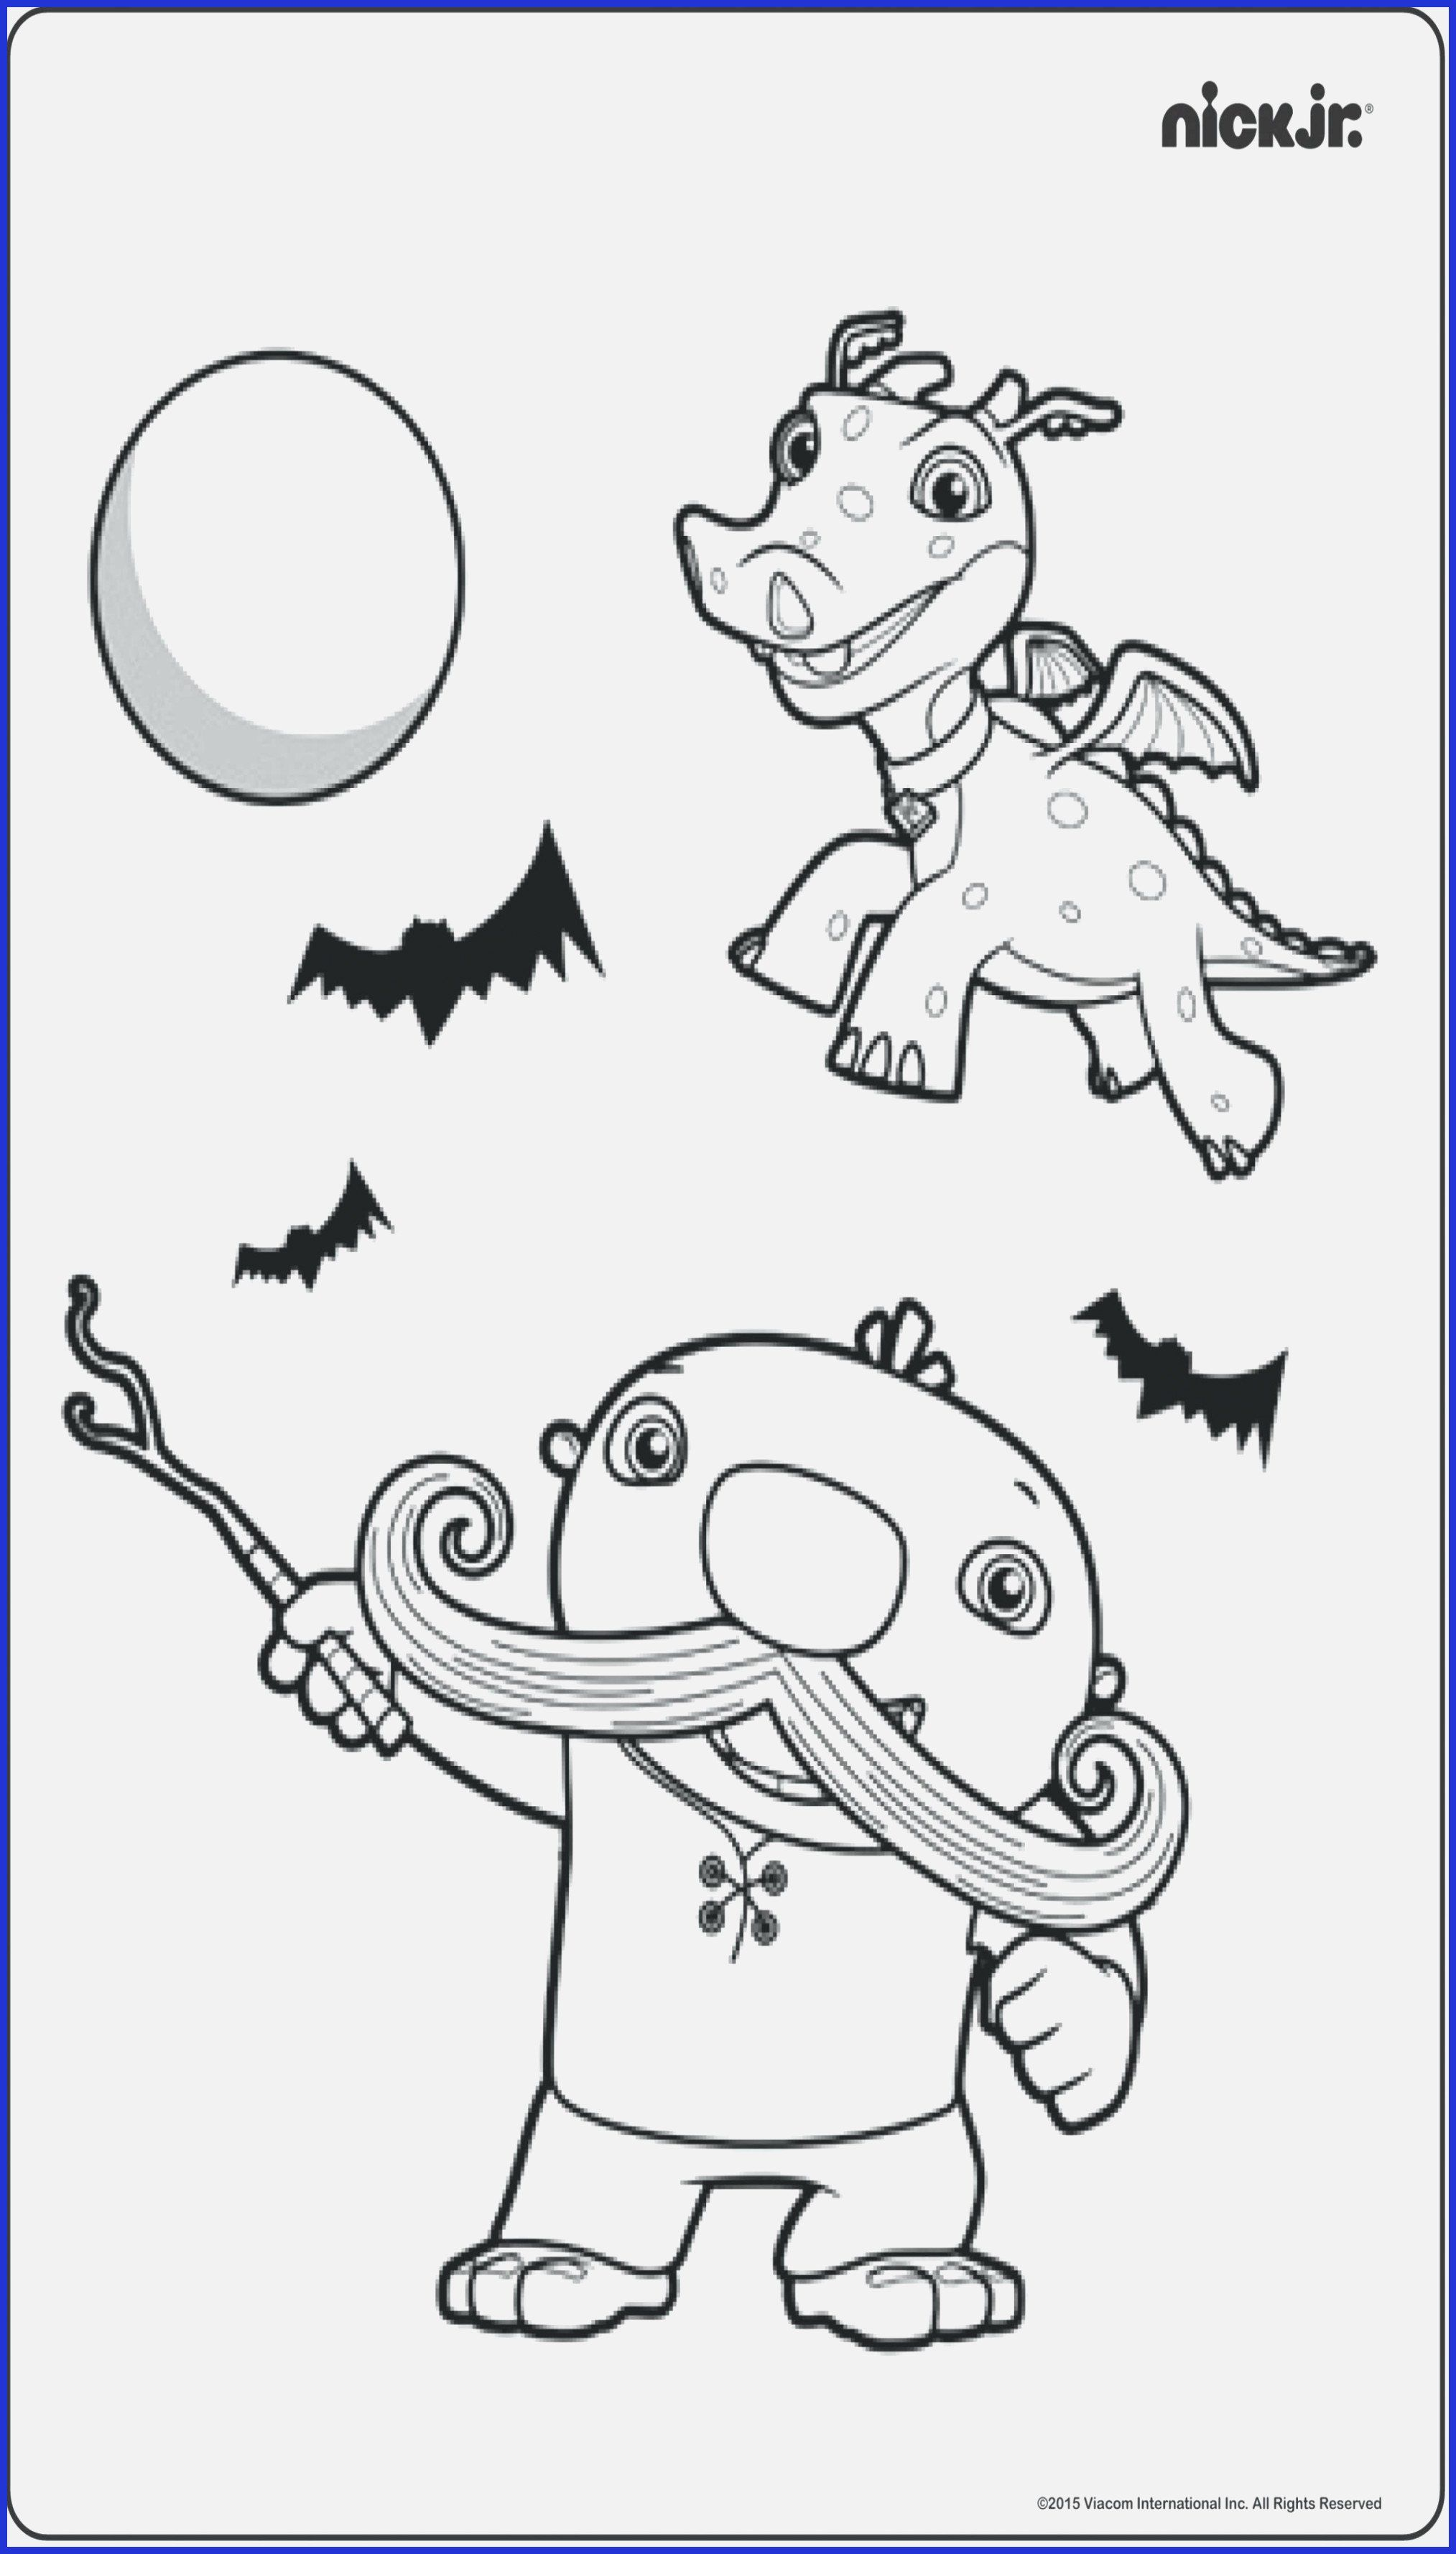 Nick Jr Coloring Pages - GetColoringPages.com | 3555x2027